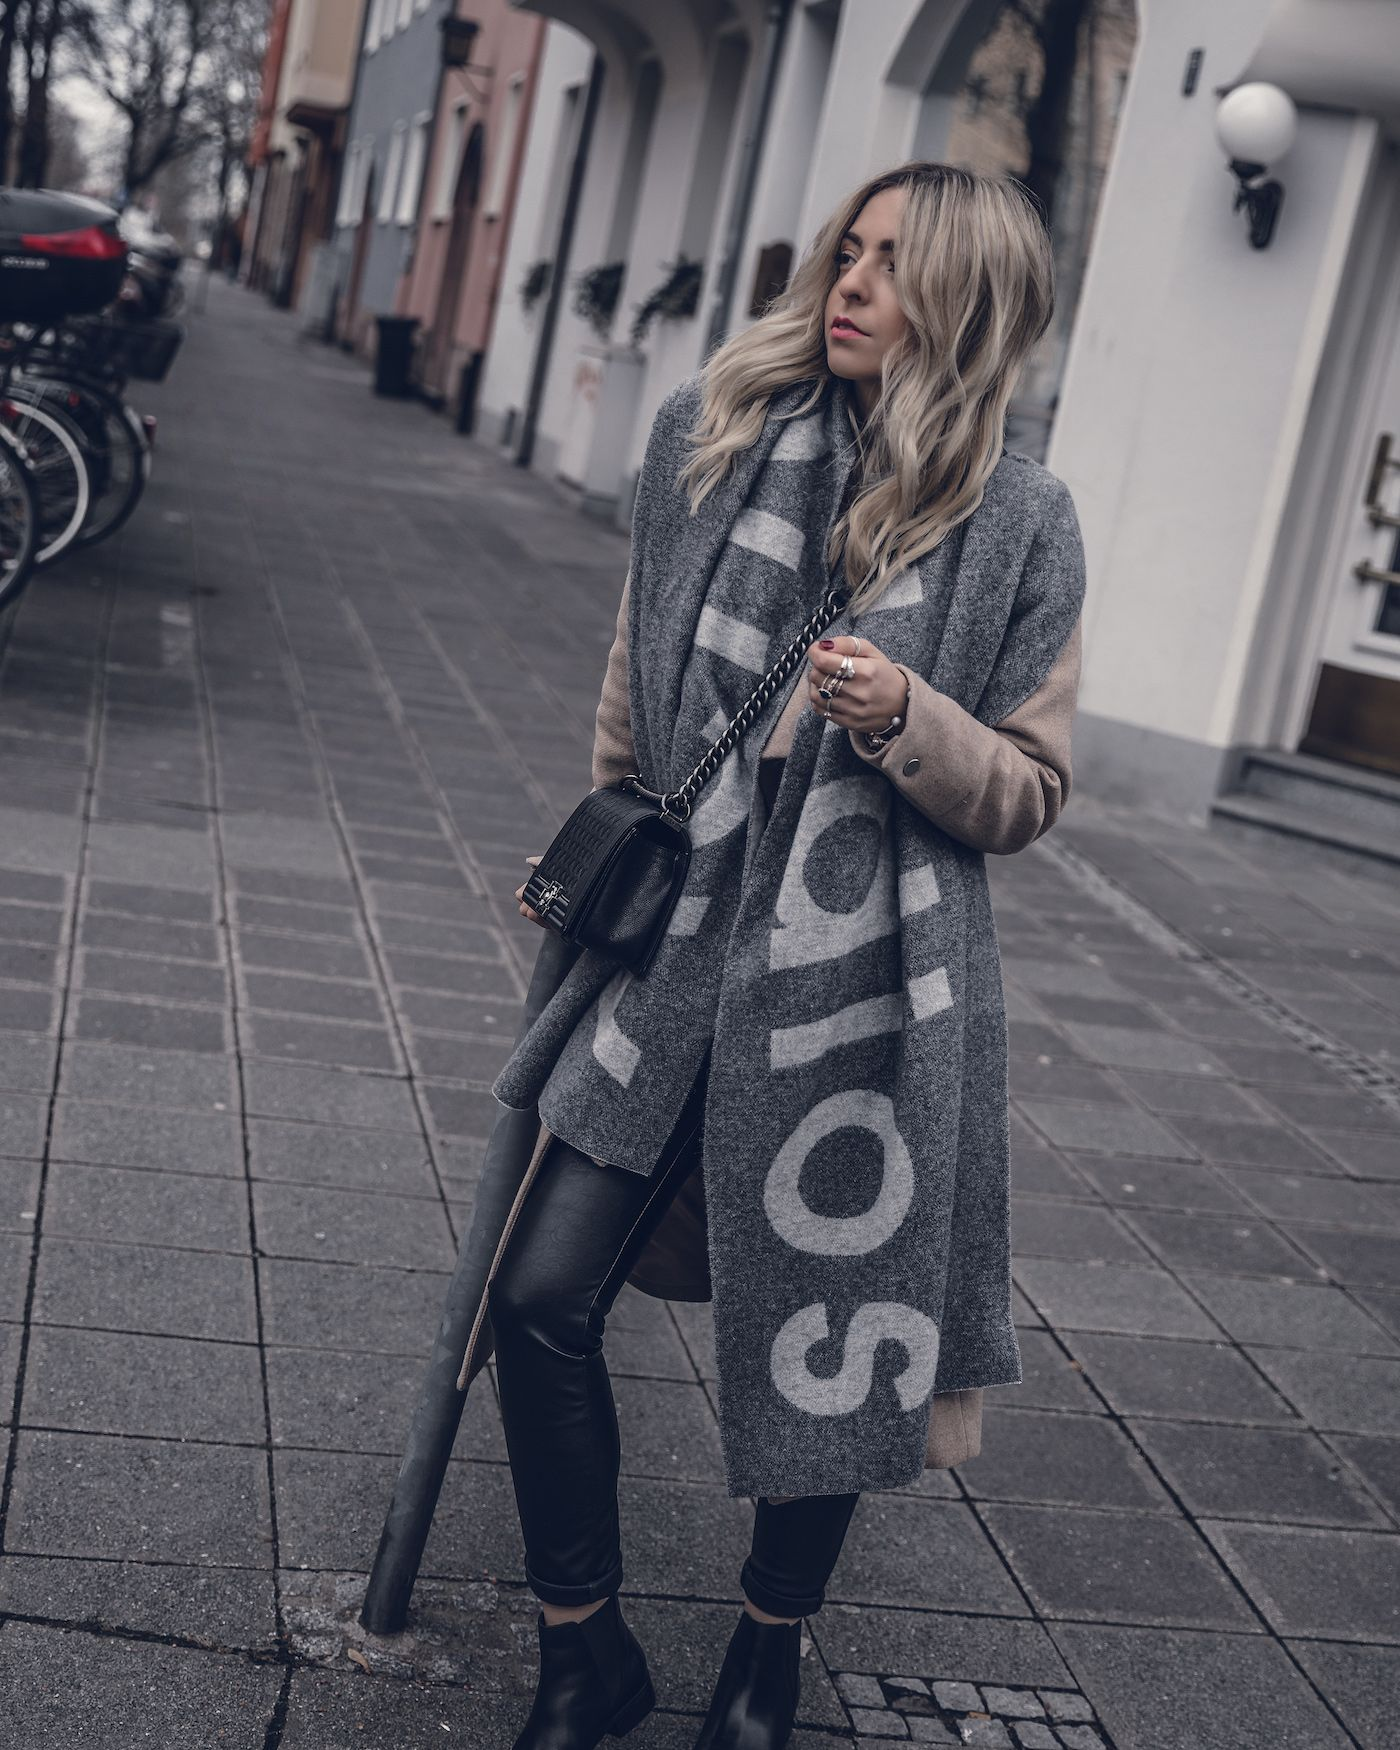 Are Acne Scarfs worth it? (With images) Winter fashion